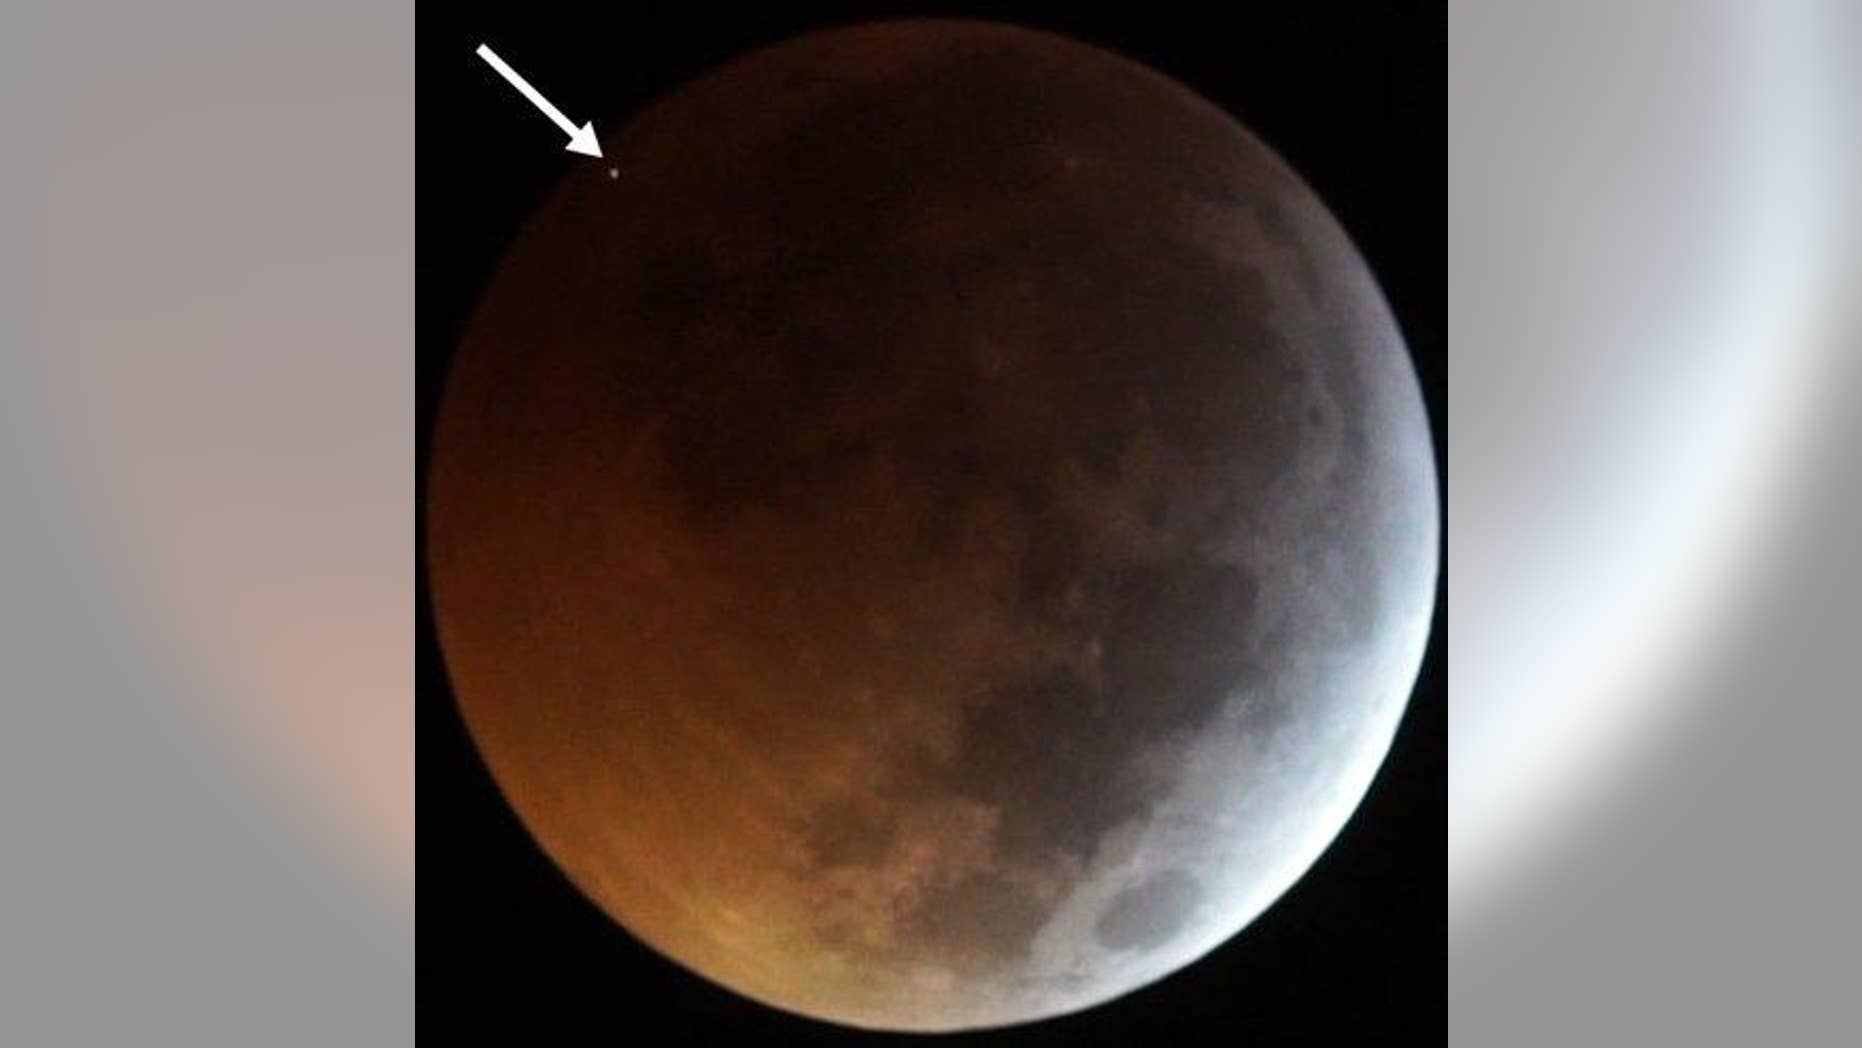 When the moon went dark on January 21, 2019, it got smacked in the face by a rock traveling 38,000 mph (61,000 km/h).